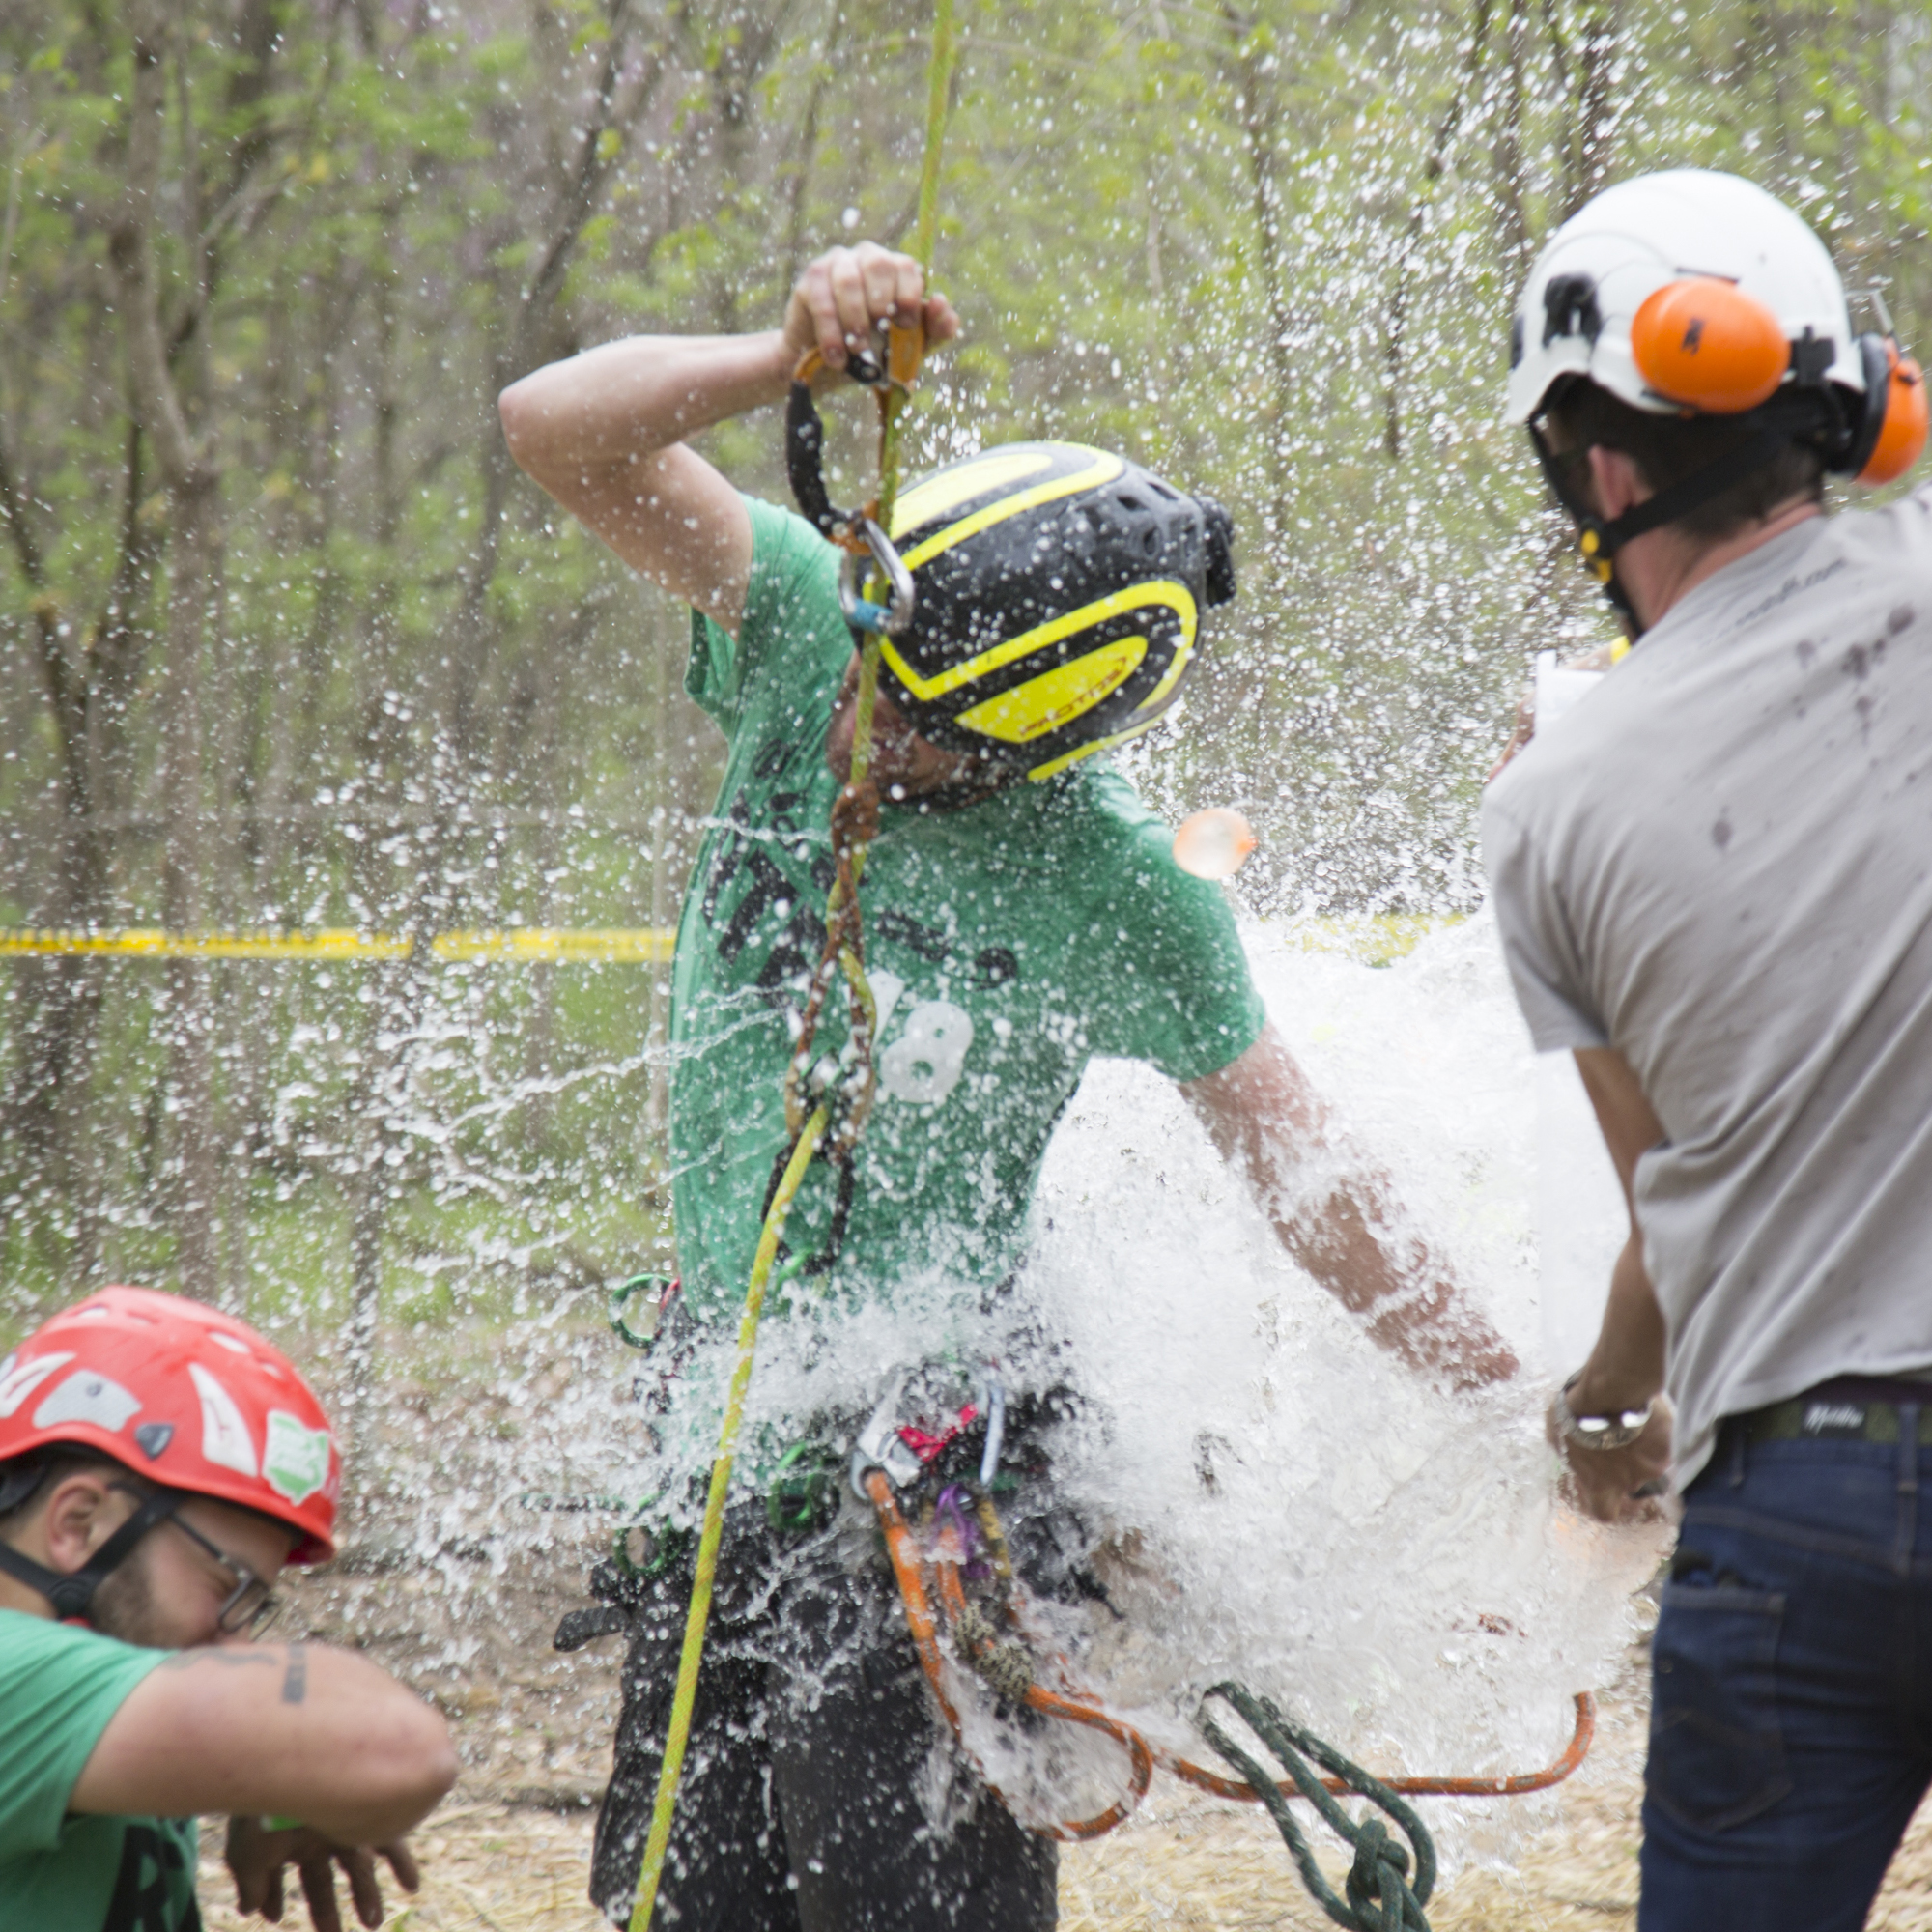 - Russell Tree Experts hosts RTE18, a tree climbing celebration and competition